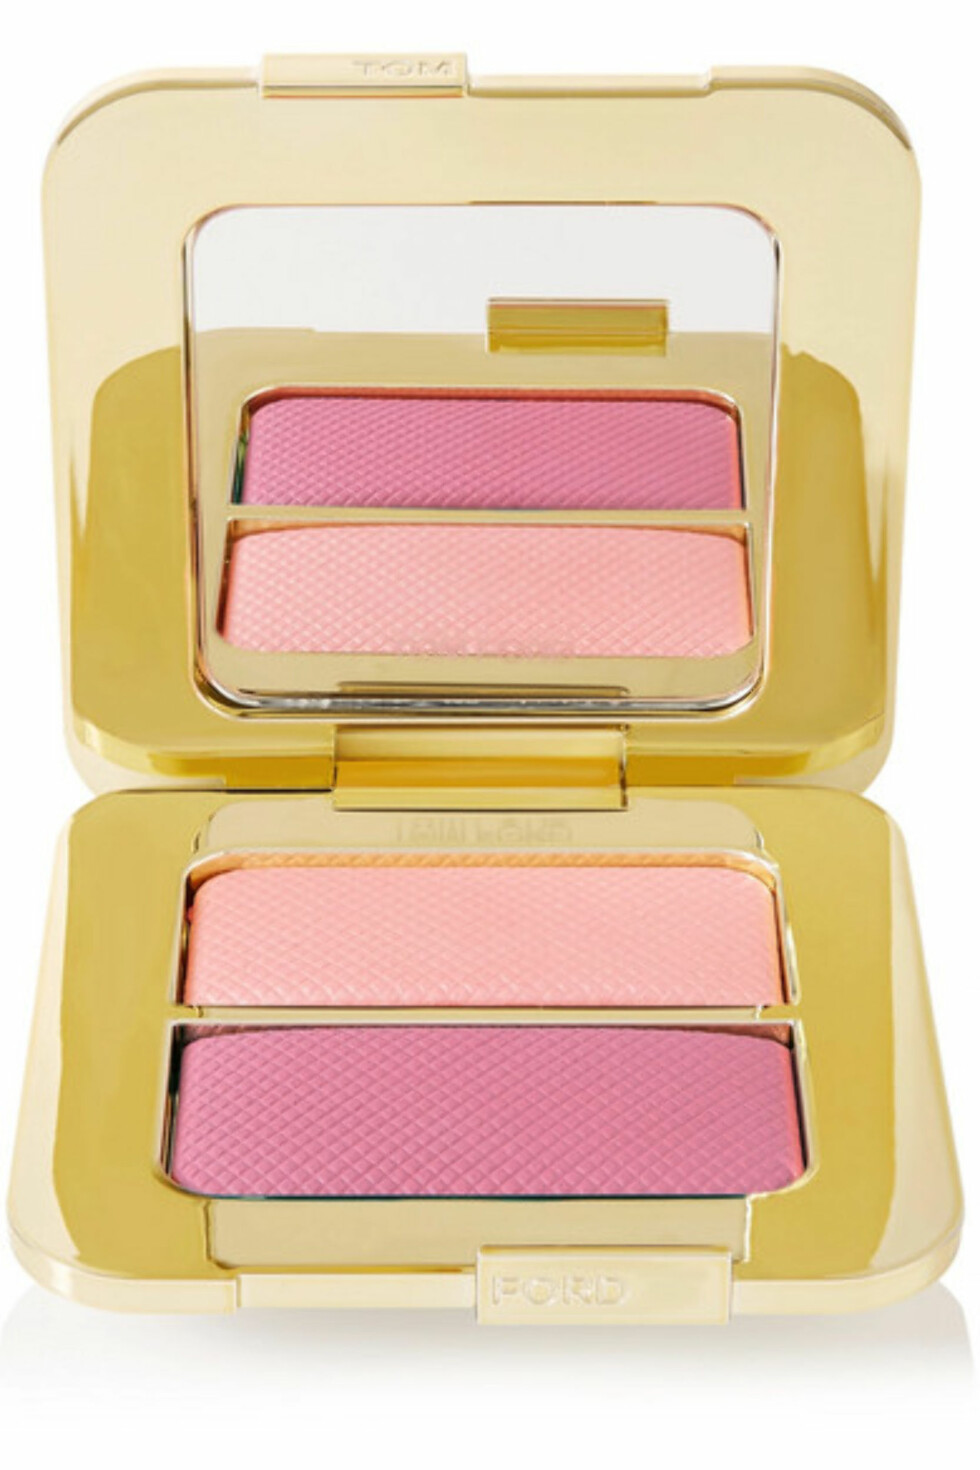 Blush fra Tom Ford |680,-| https://www.net-a-porter.com/no/en/product/1039700/tom_ford_beauty/sheer-cheek-duo---lavender-lure